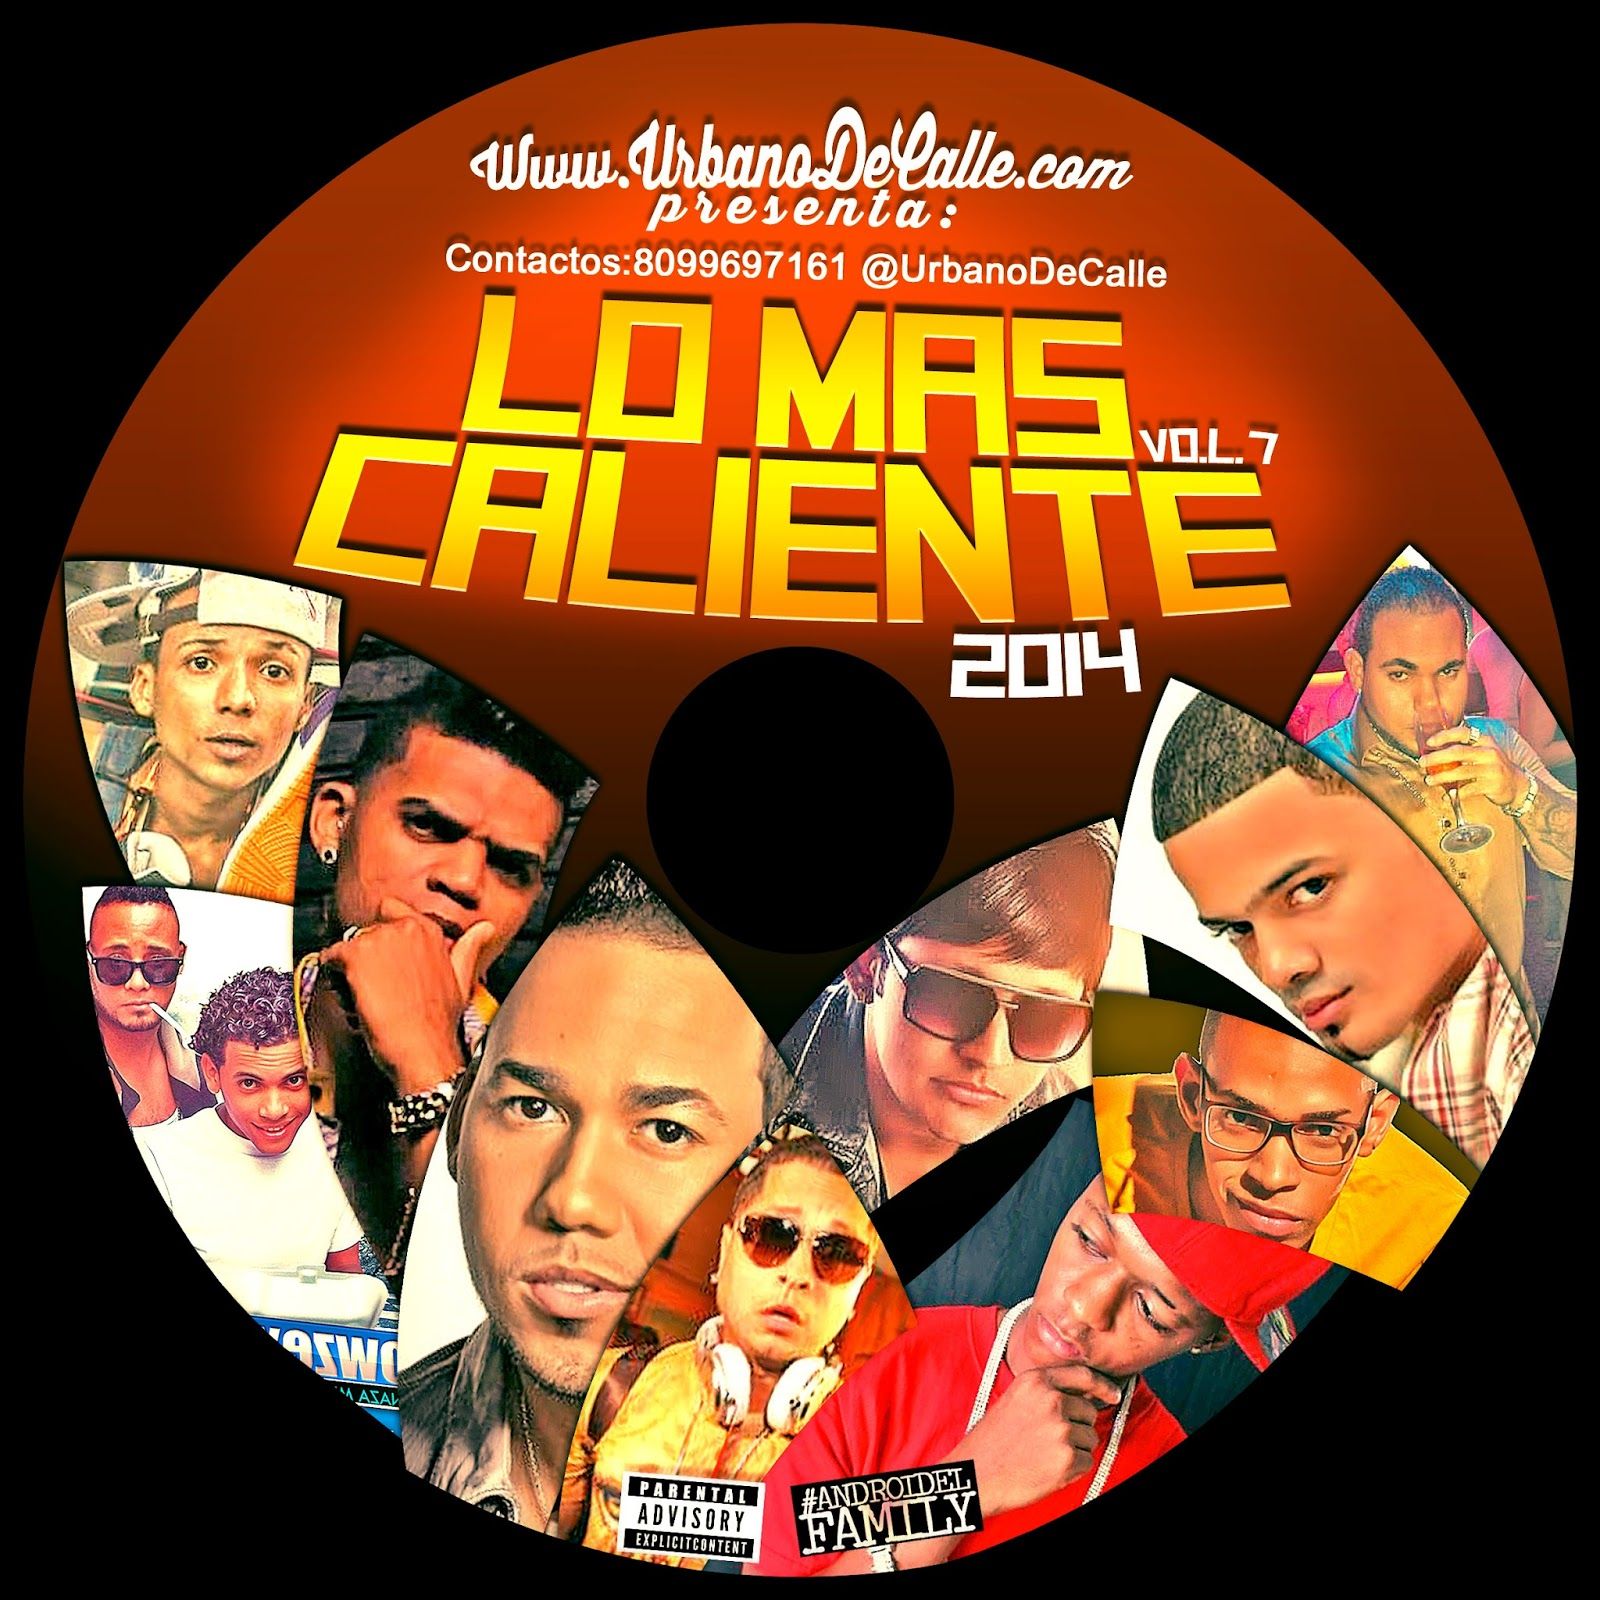 http://www.mediafire.com/download/8lpeuw8t5cpe4si/UrbanoDeCalle.Com+Presenta+Lo+Mas+Caliente+Vol.7+%28CD+COMPLETO%29.rar